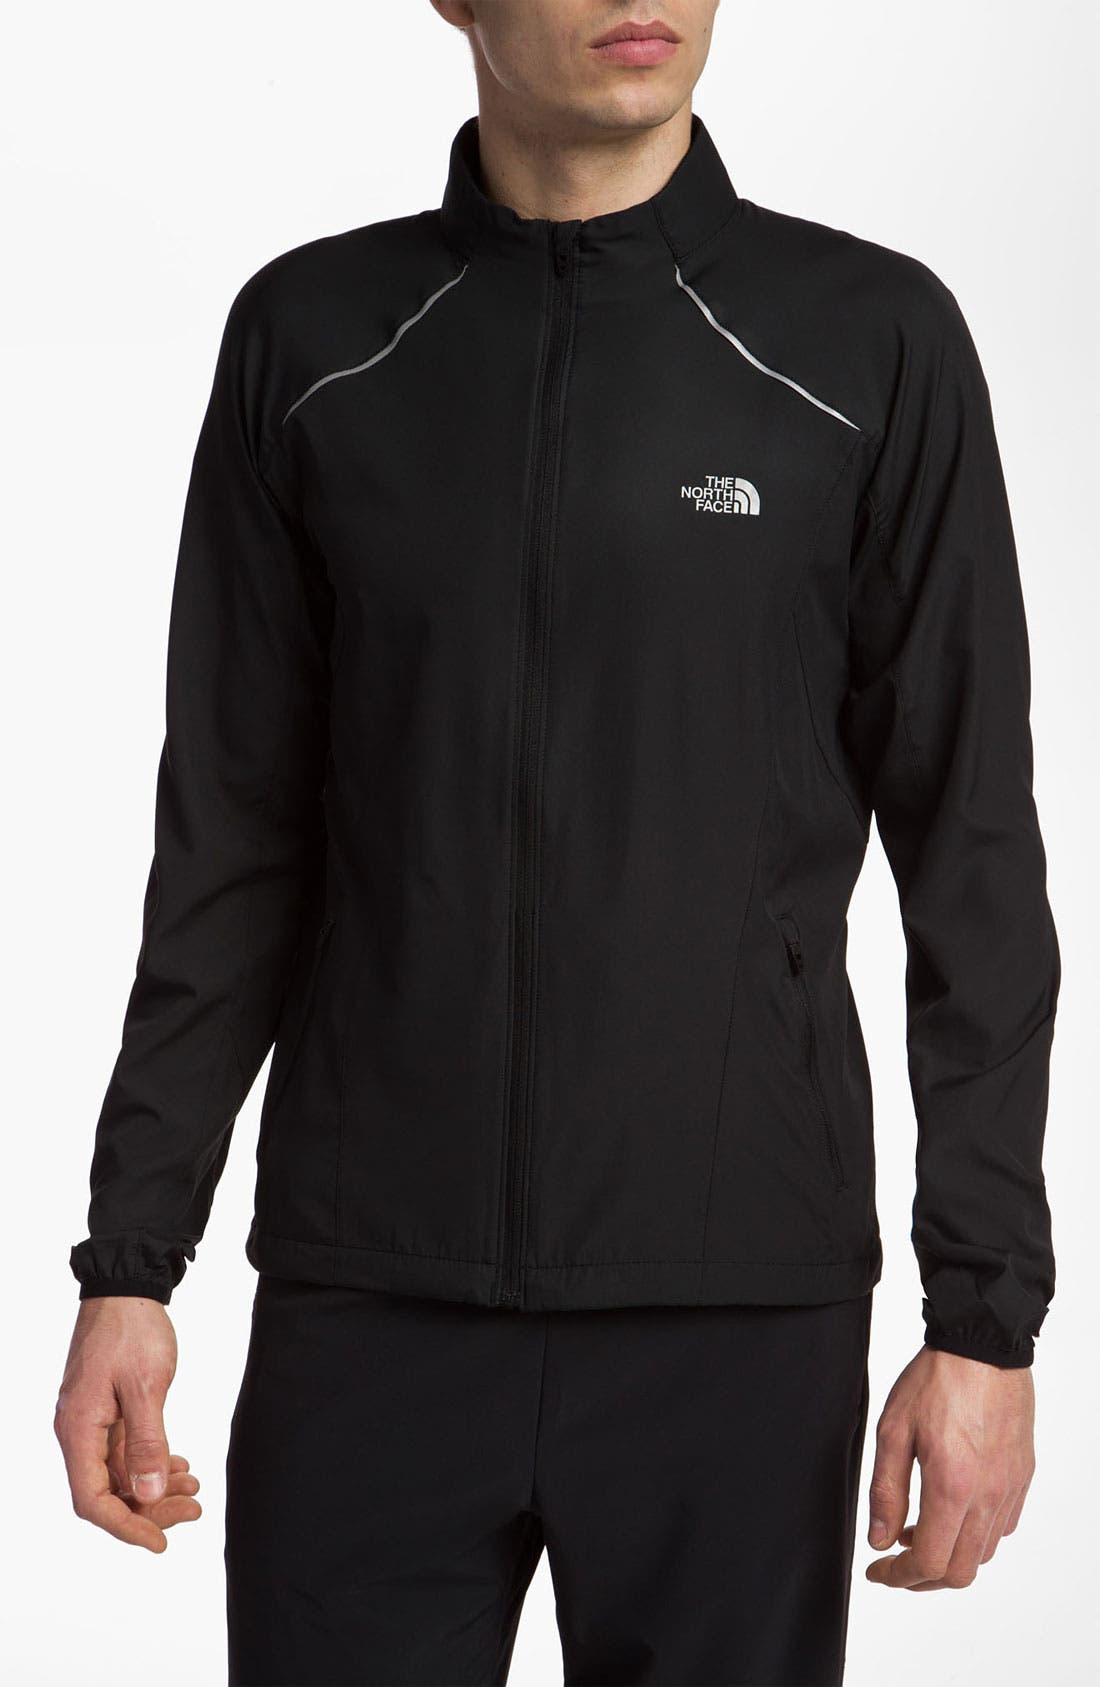 Alternate Image 1 Selected - The North Face 'Torpedo' Jacket